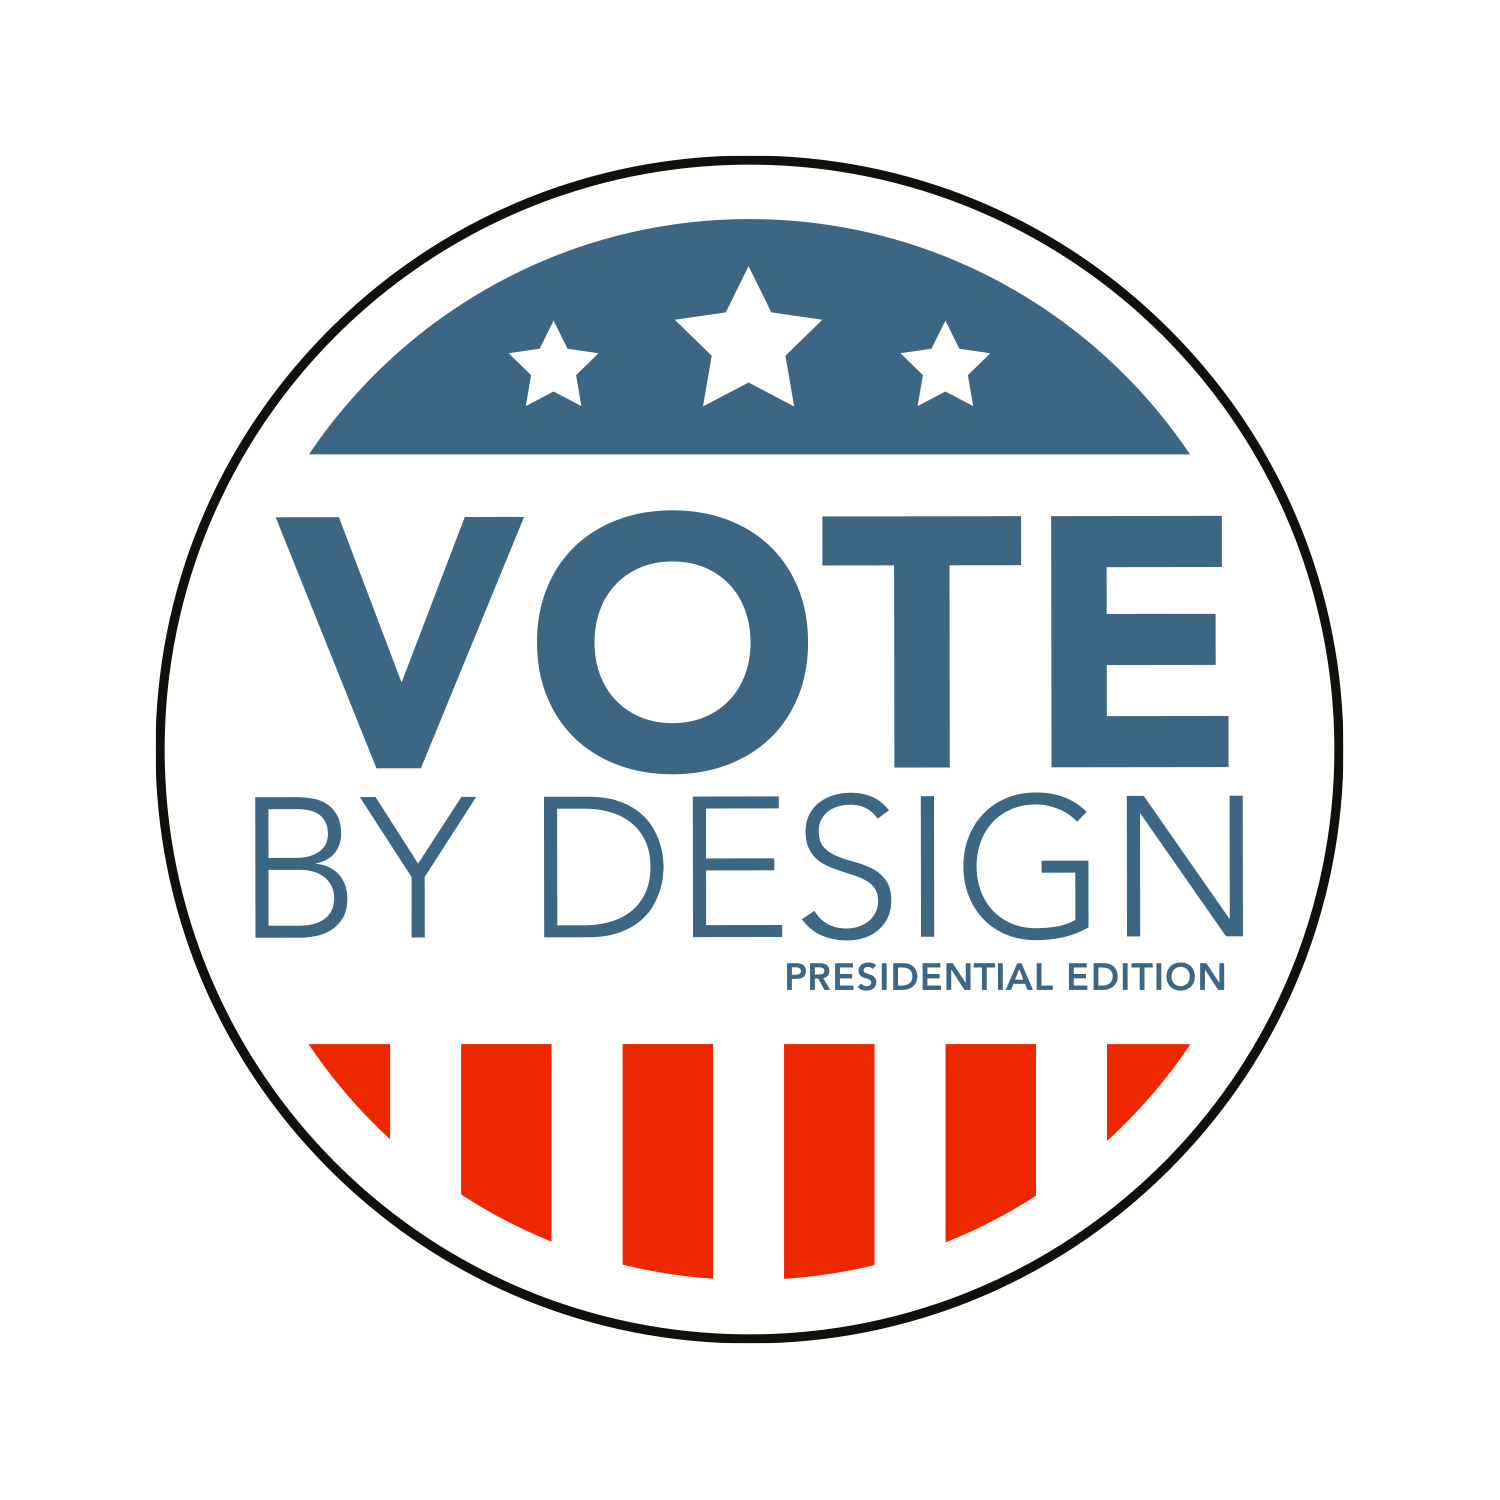 Applying the Principles of Design to Motivate First-Time Voters